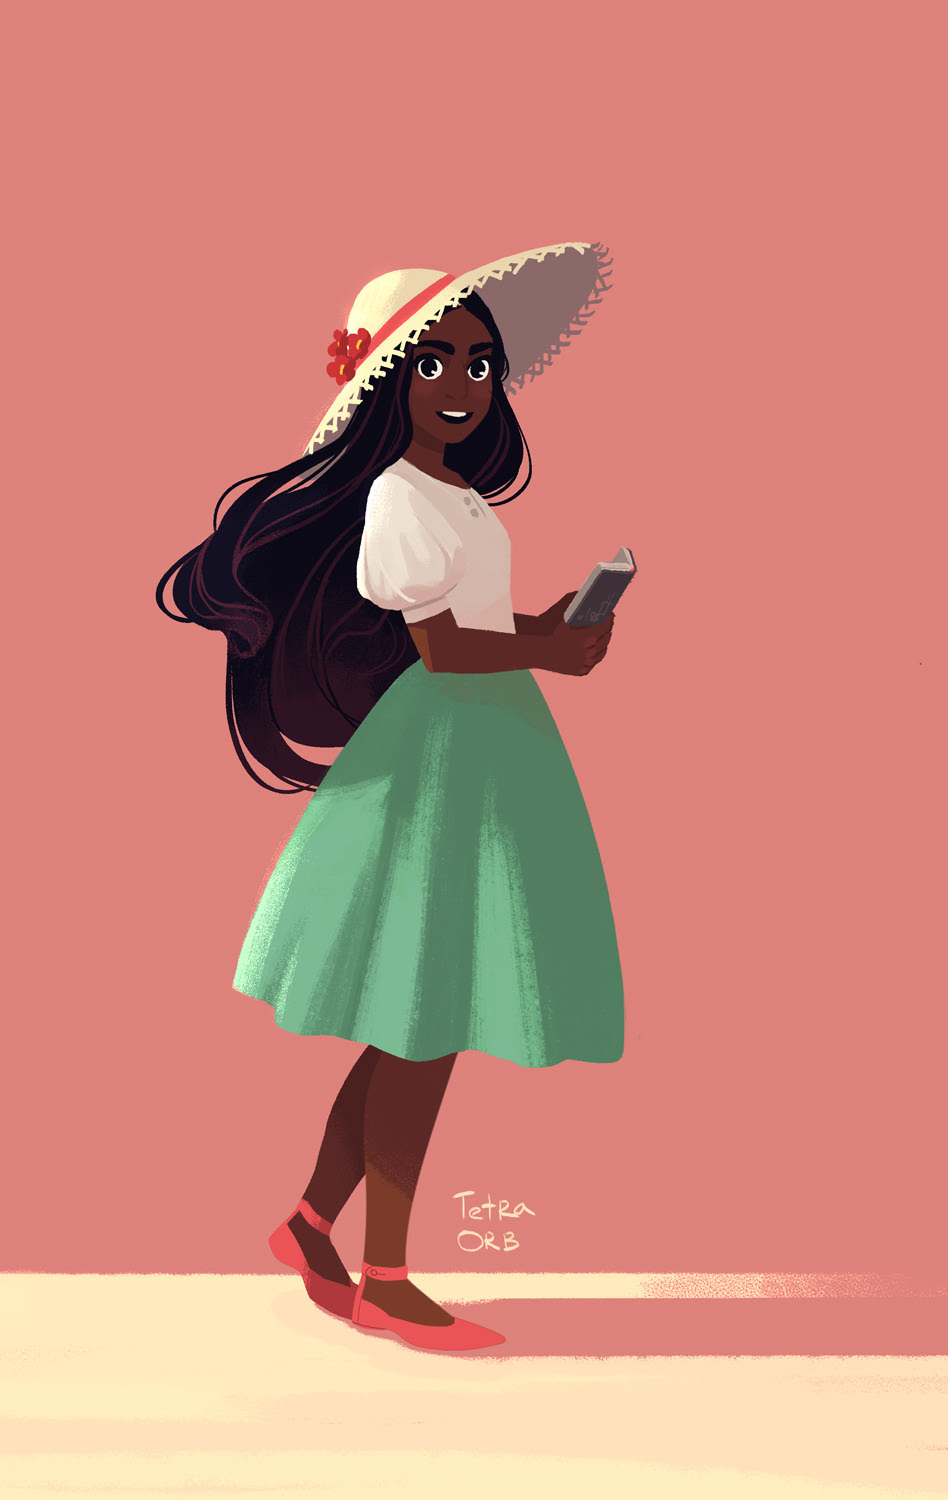 Connie is my love forever.